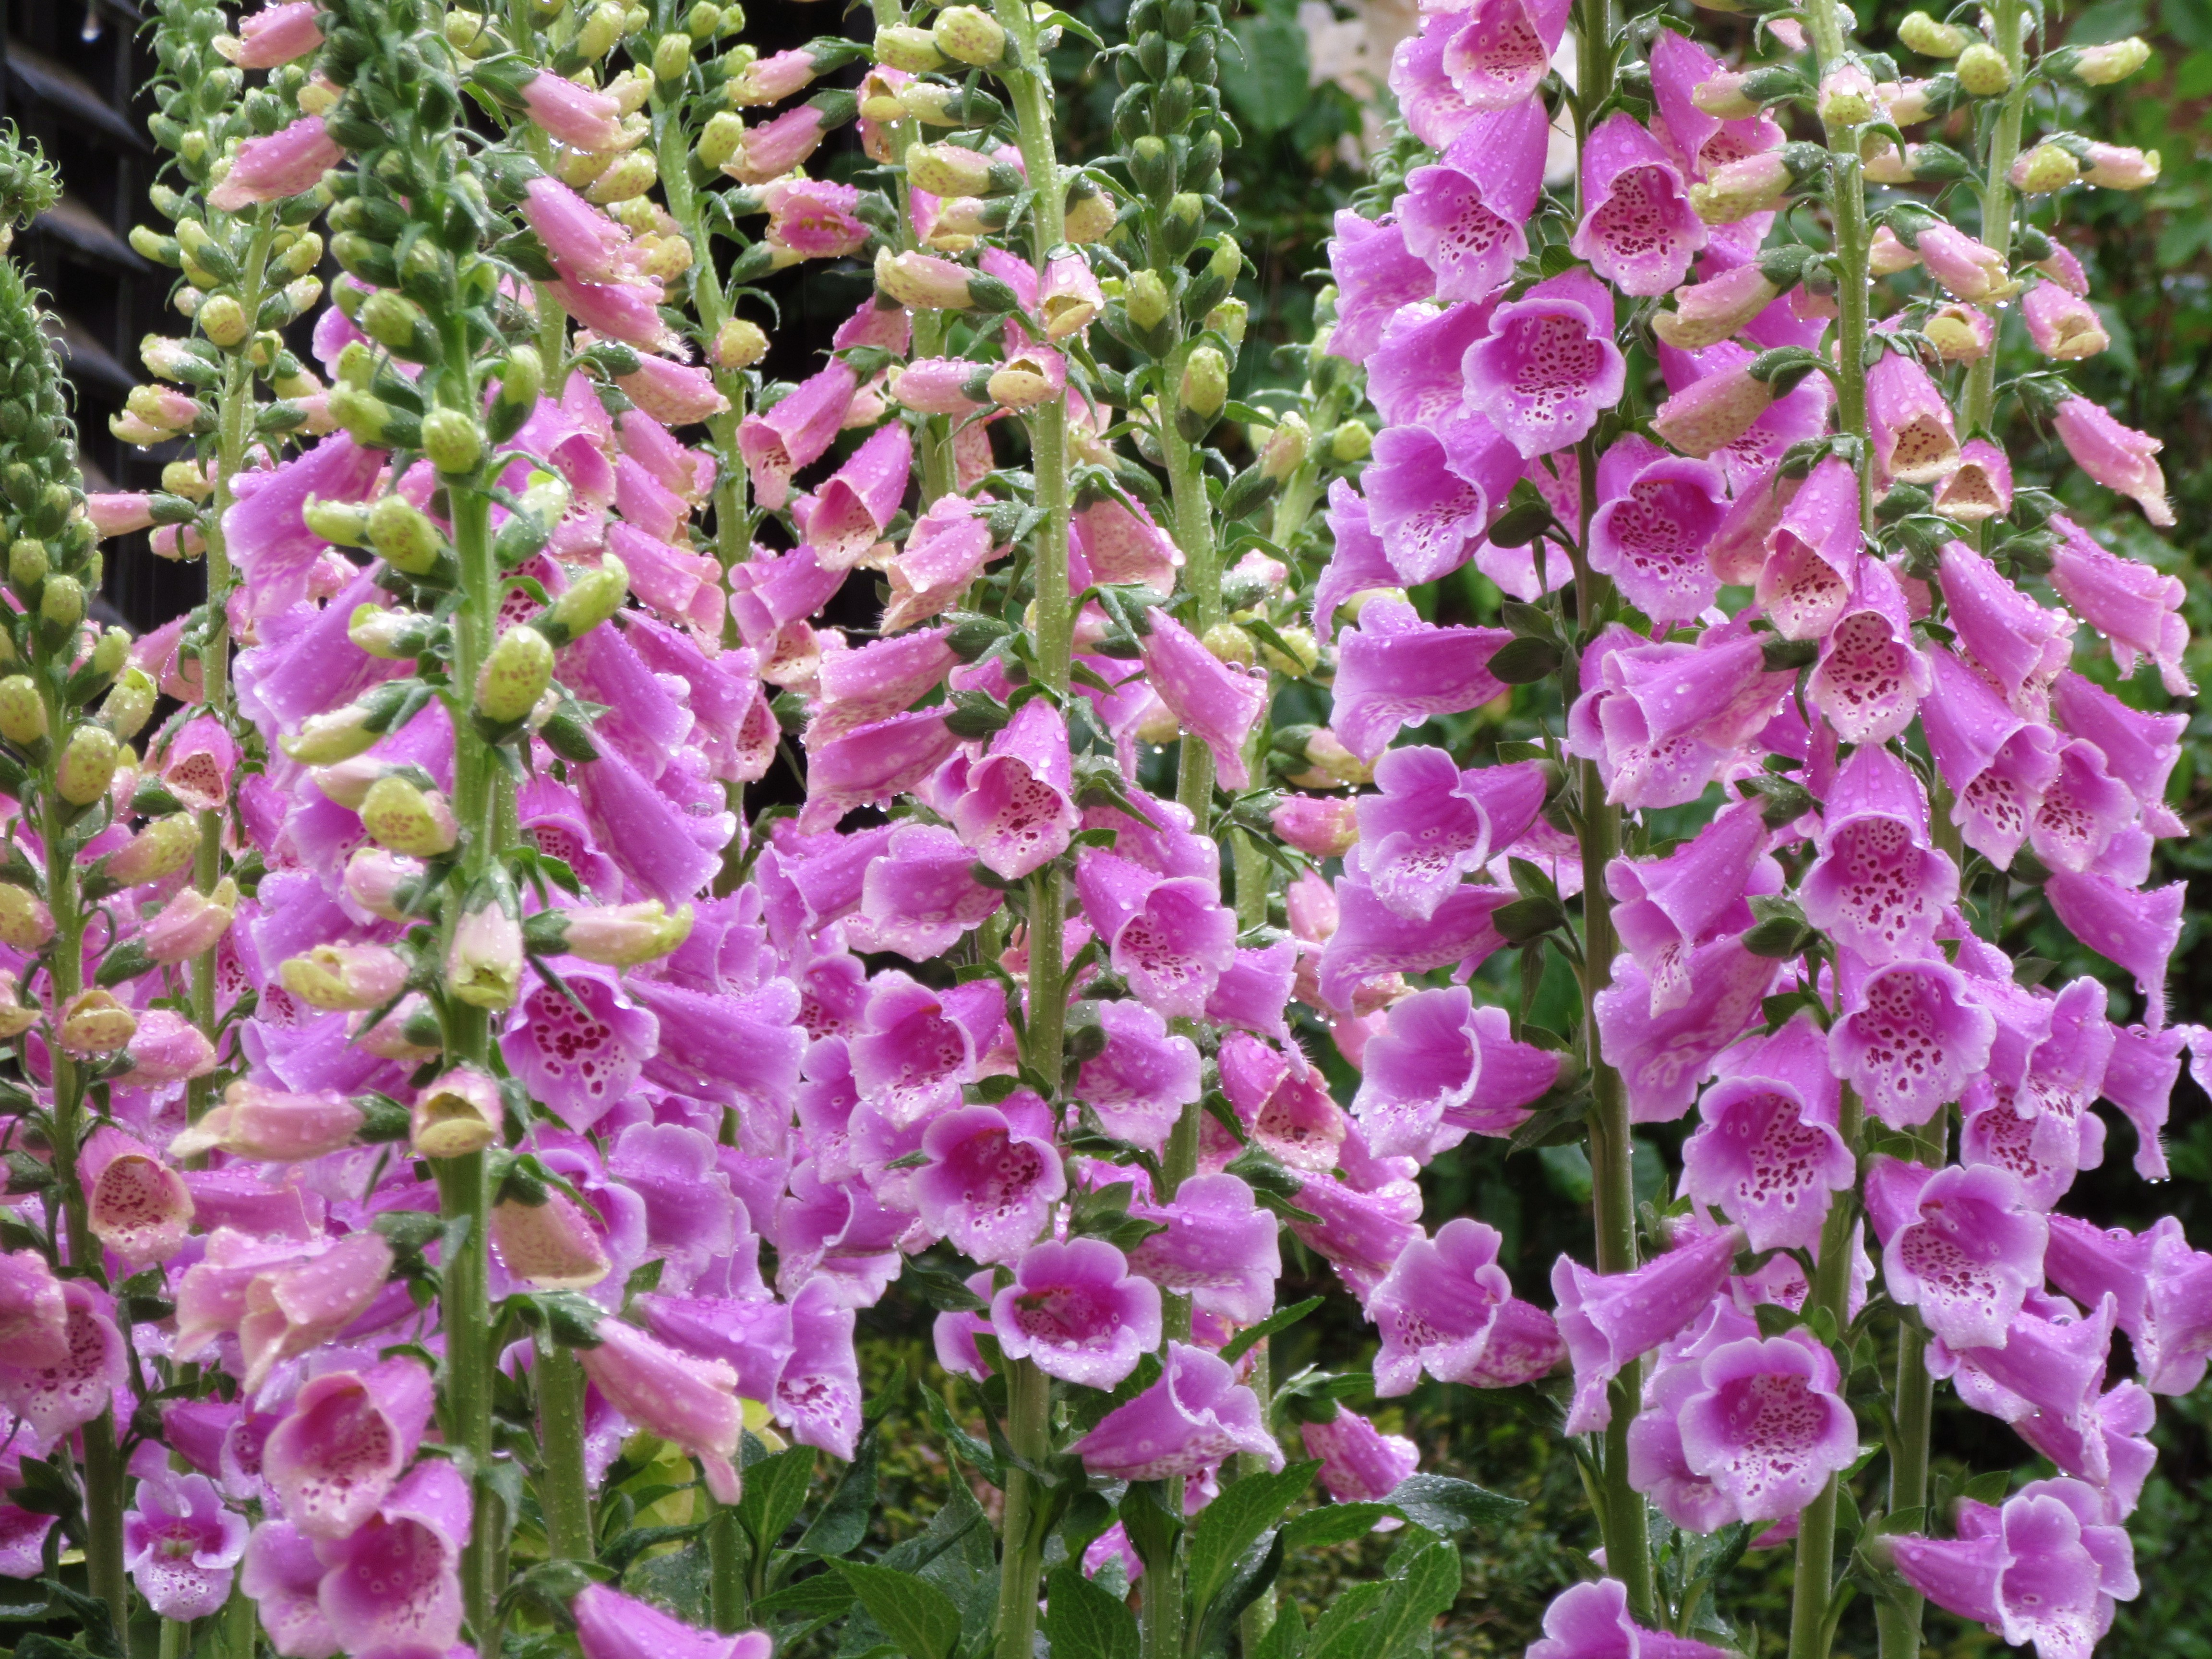 From A Wet Thursday Poppies Wisteria Foxgloves Roses And A